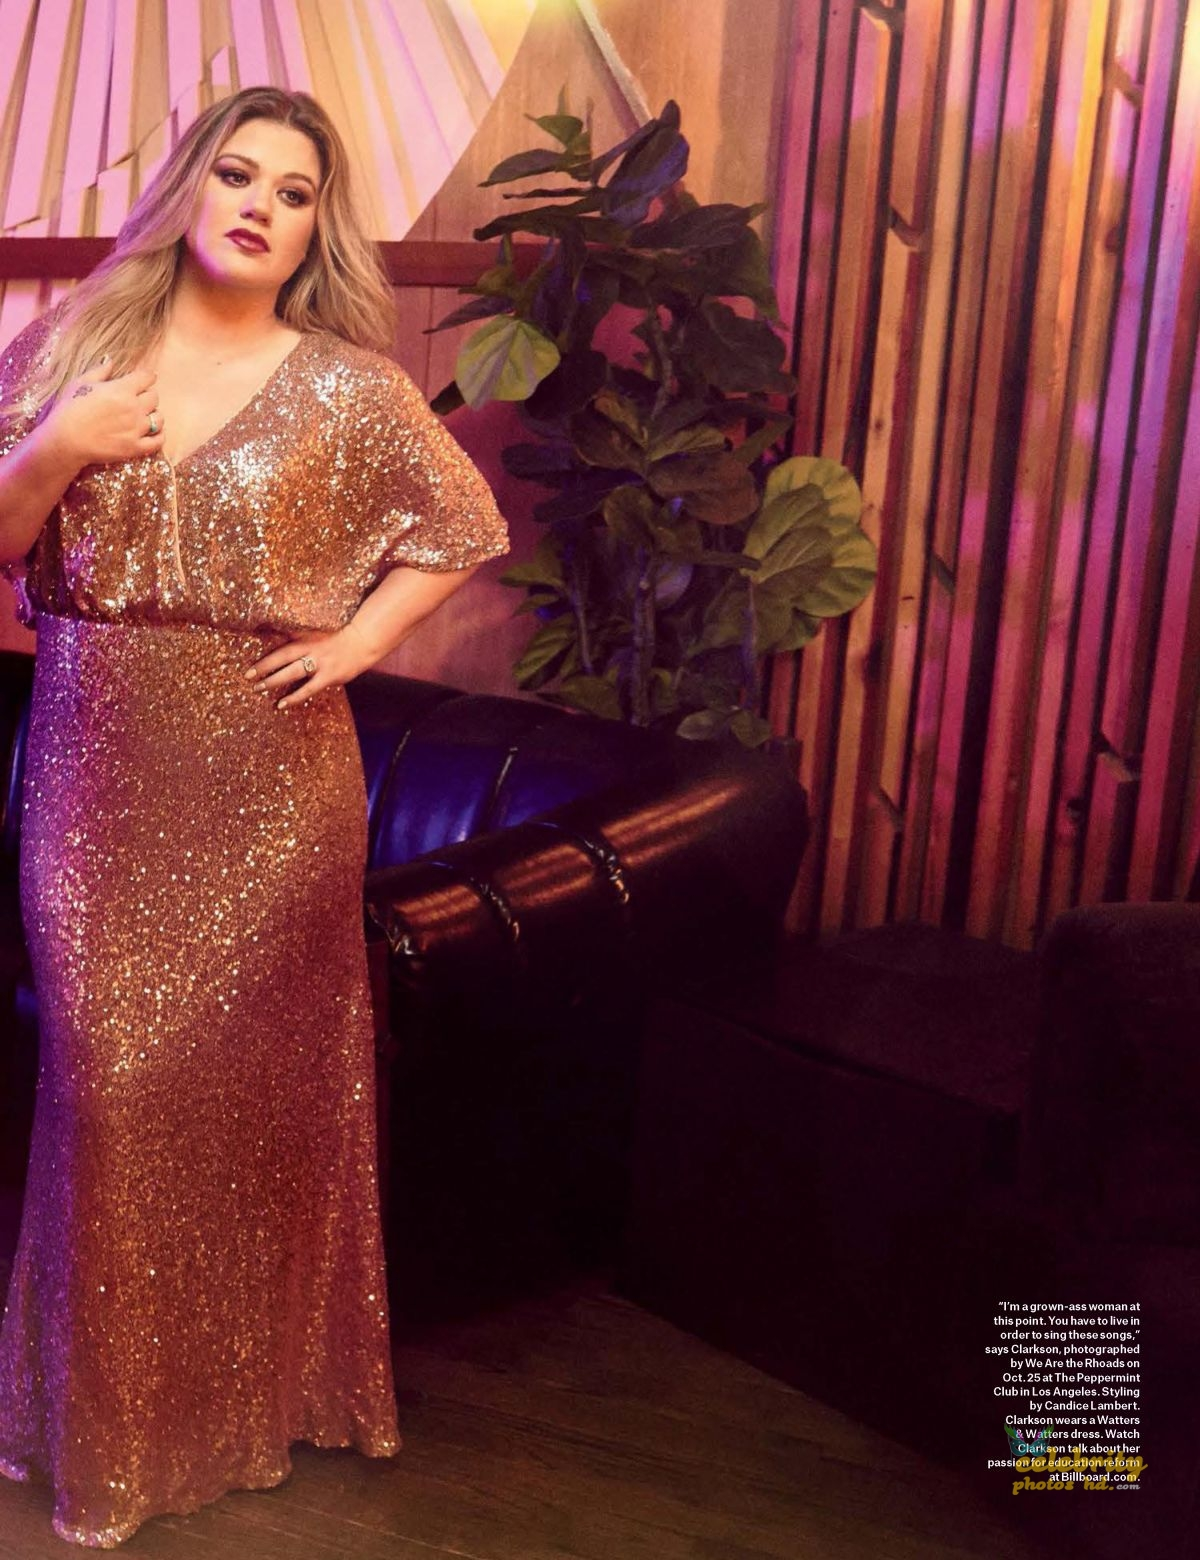 KELLY CLARKSON in Billboard Magazine (1)